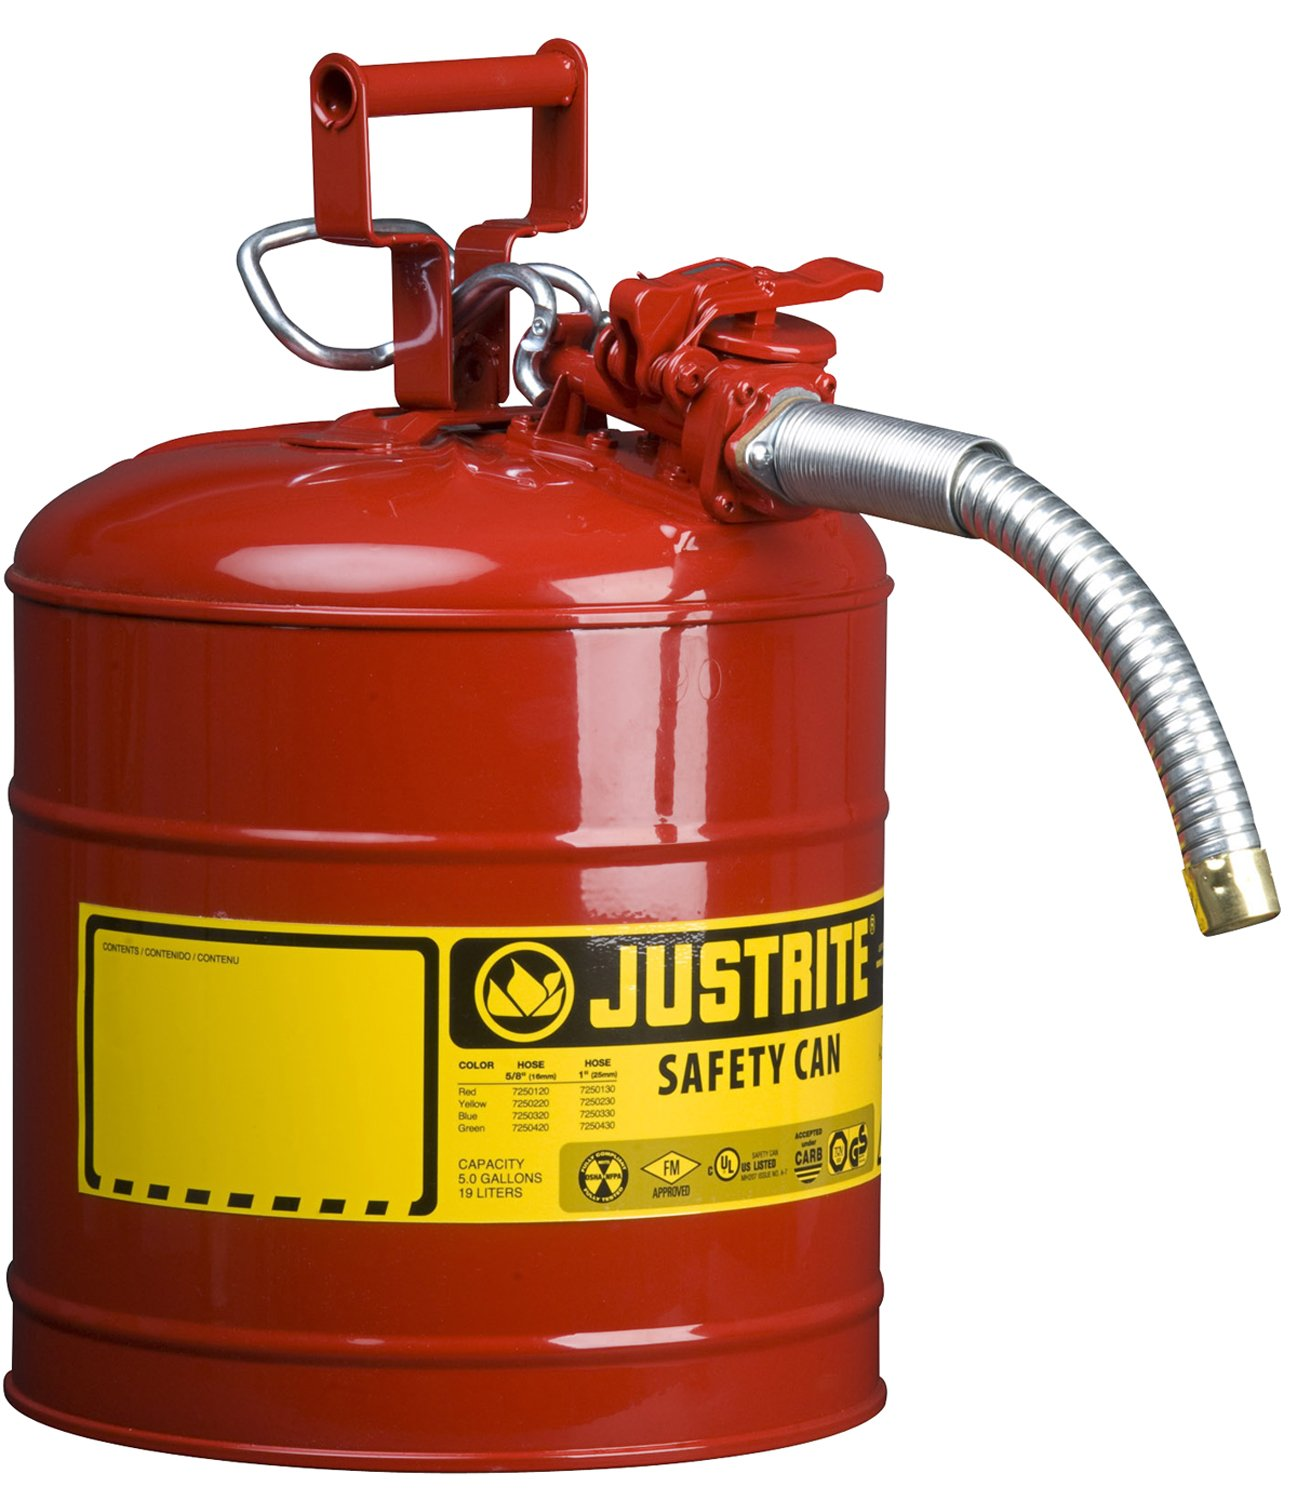 Justrite 7250130 Galvanized Steel, AccuFlow Type II Red Safety Can with 1'' Flexible Spout, Large ID zone, Meets OSHA & NFPA For Handling Hazardous liquids. 5 Gallon (19L) Size.